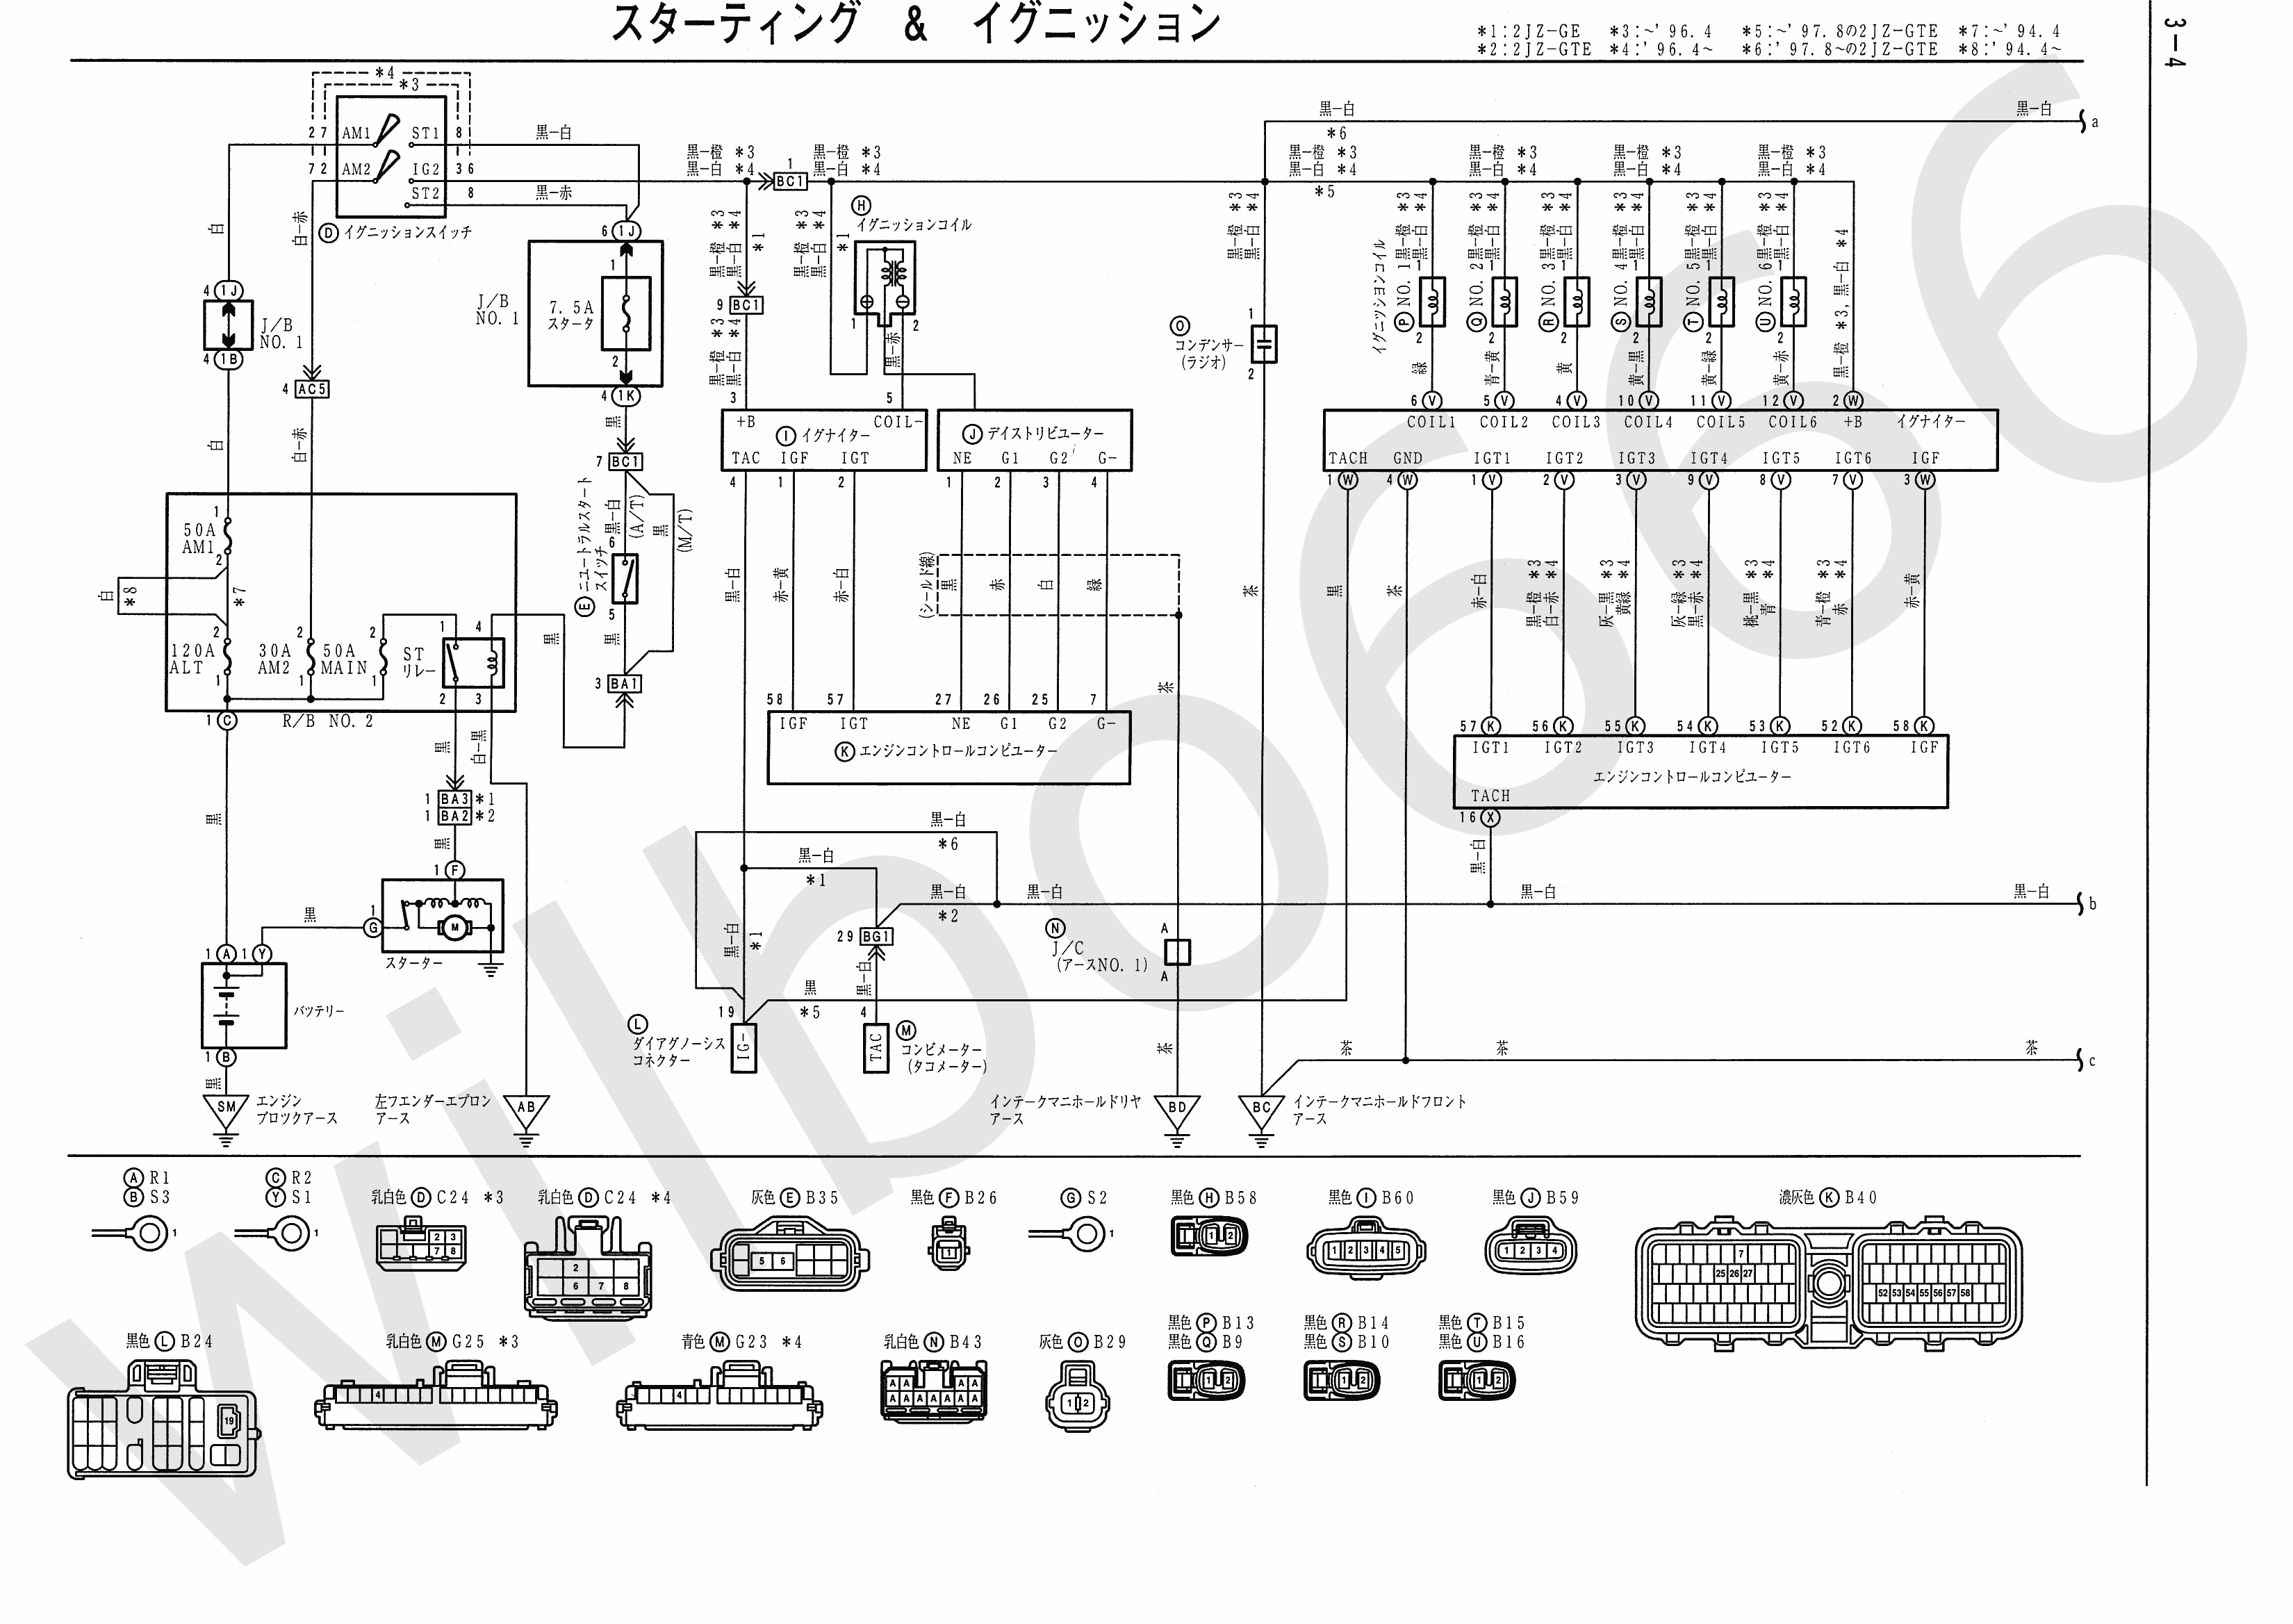 JZA80 Electrical Wiring Diagram 6742505 3 4?ssl\\\\\\\\\\\\\\\\\\\\\\\\\\\\\\\\\\\\\\\\\\\\\\\\\\\\\\\\\\\\\\\\\\\\\\\\\\\\\\\\\\\\\\\\\\\\\\\\\\\\\\\\\\\\\\\\\\\\\\\\\\\\=1 amazing 3sgte wiring diagram gallery wiring schematic tvservice us autronic sm4 wiring diagram at reclaimingppi.co